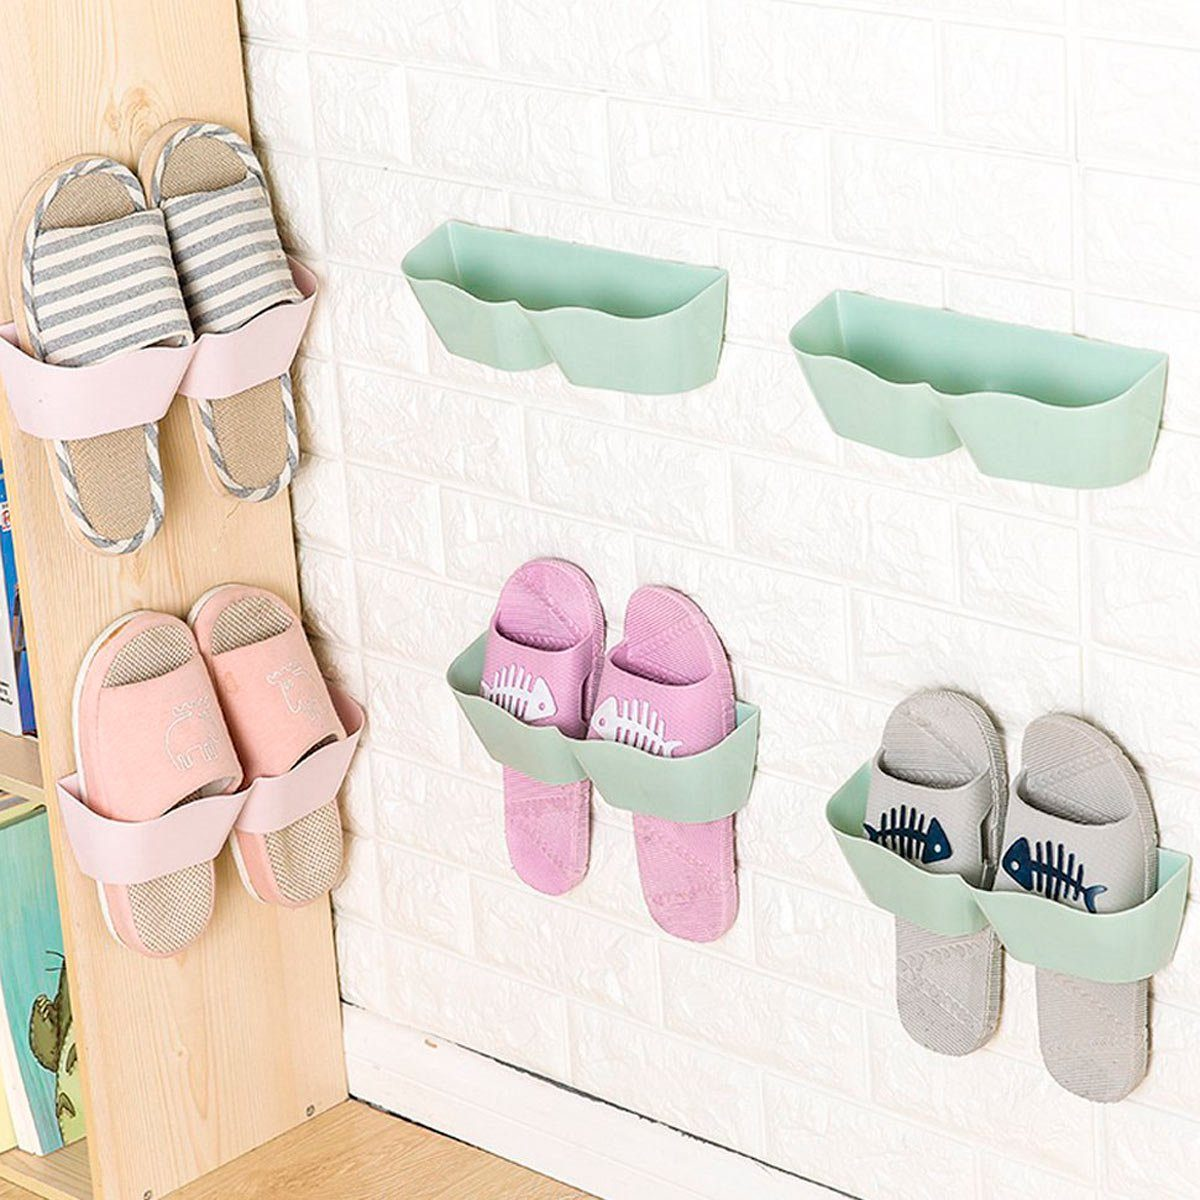 Stick-On Shoe Holders